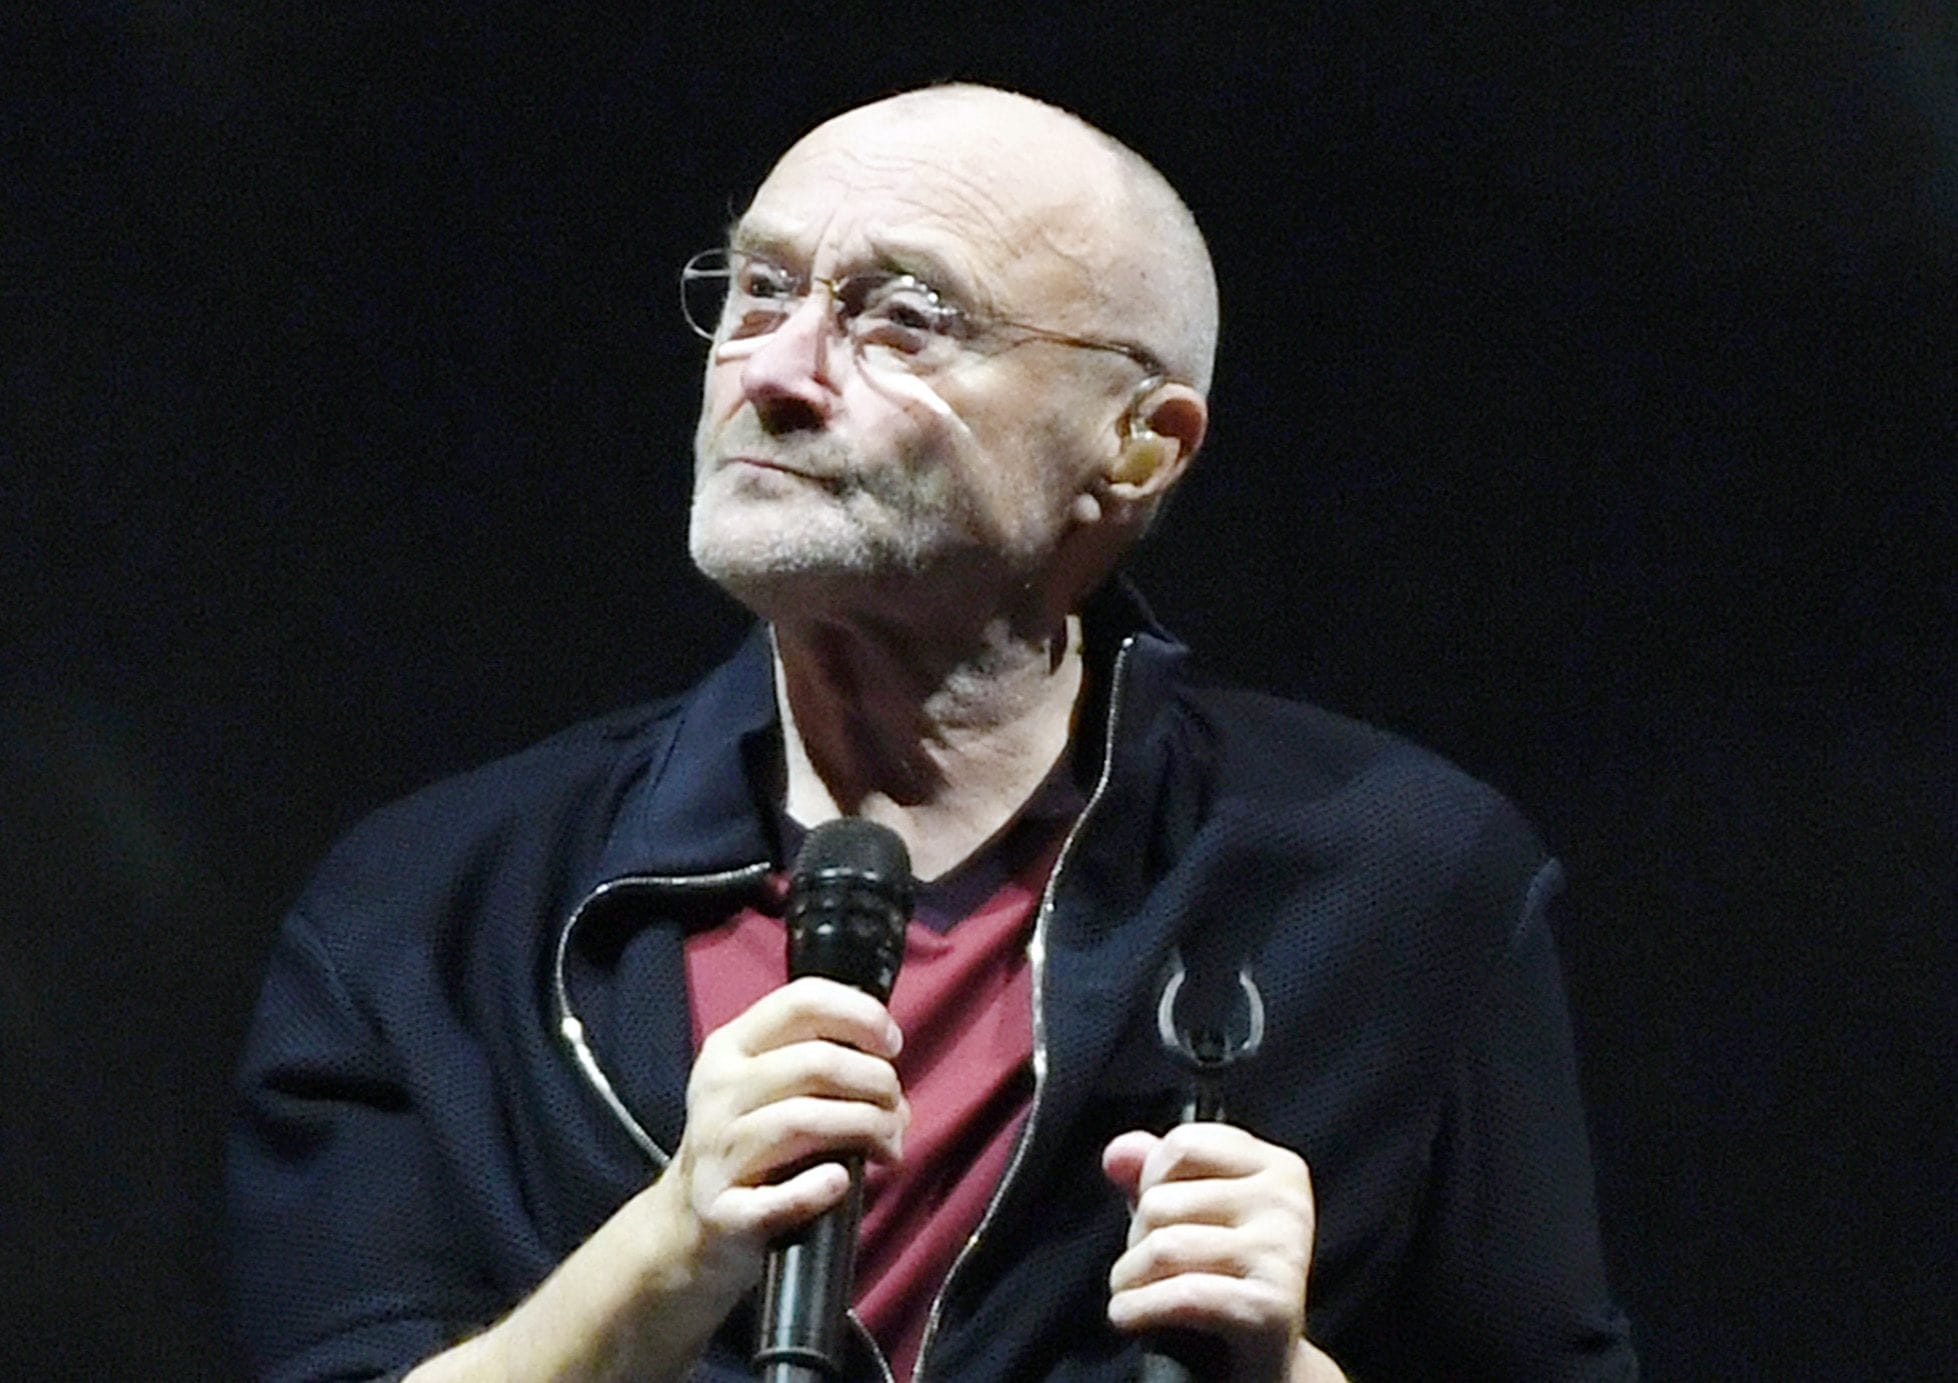 Phil Collins (Photo by Ethan Miller/Getty Images)